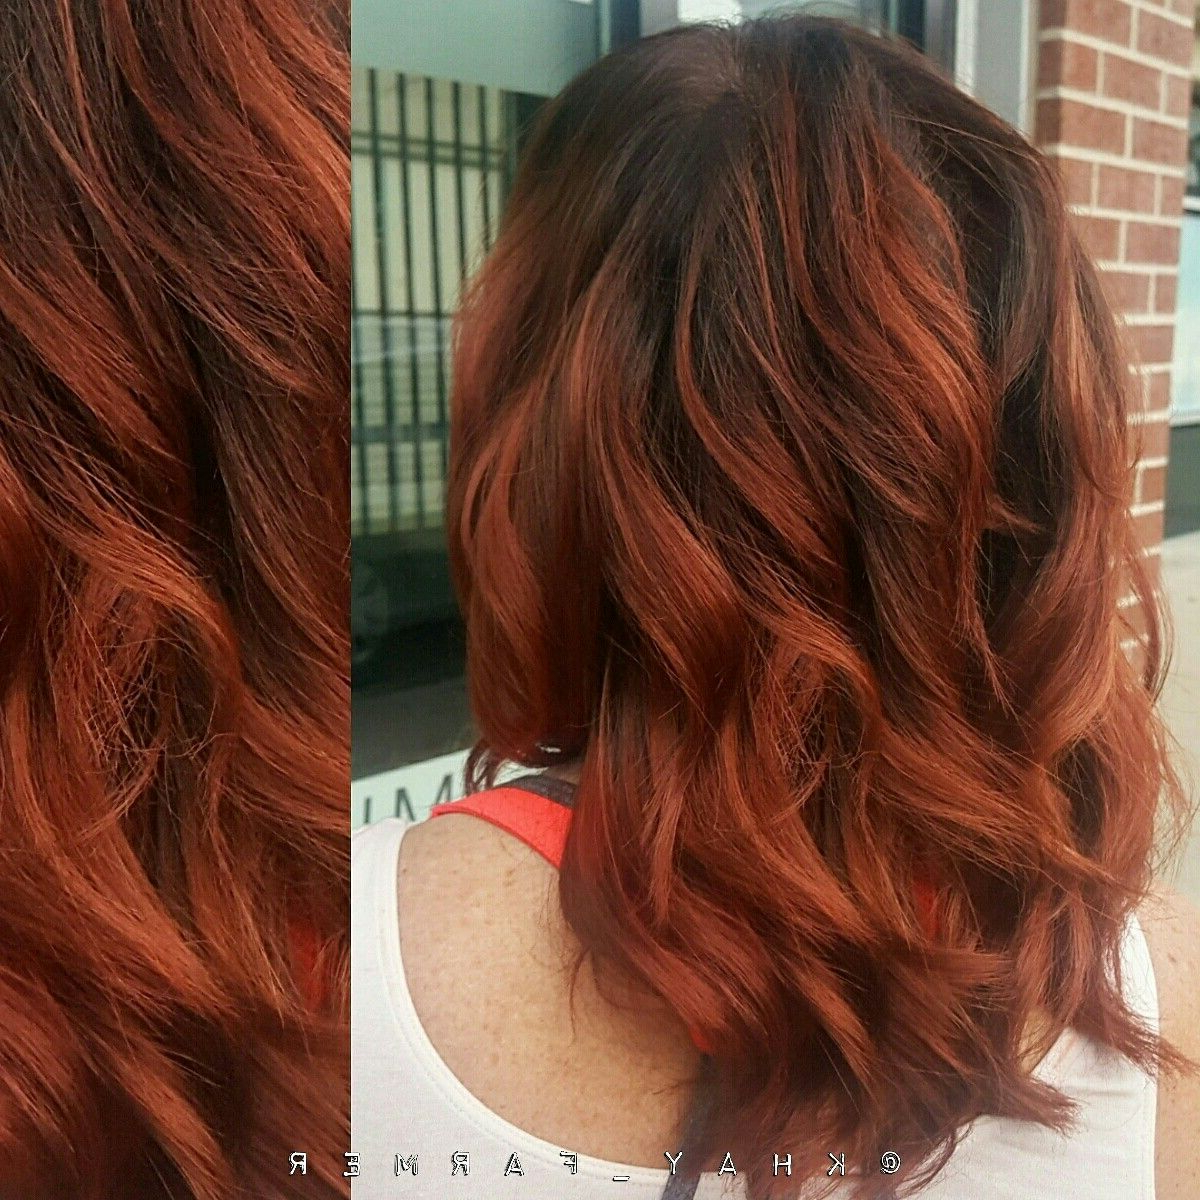 Red Dimensional Hair With A Shadow Root   Hair Shadow Intended For Dimensional Dark Roots To Red Ends Balayage Hairstyles (View 14 of 20)